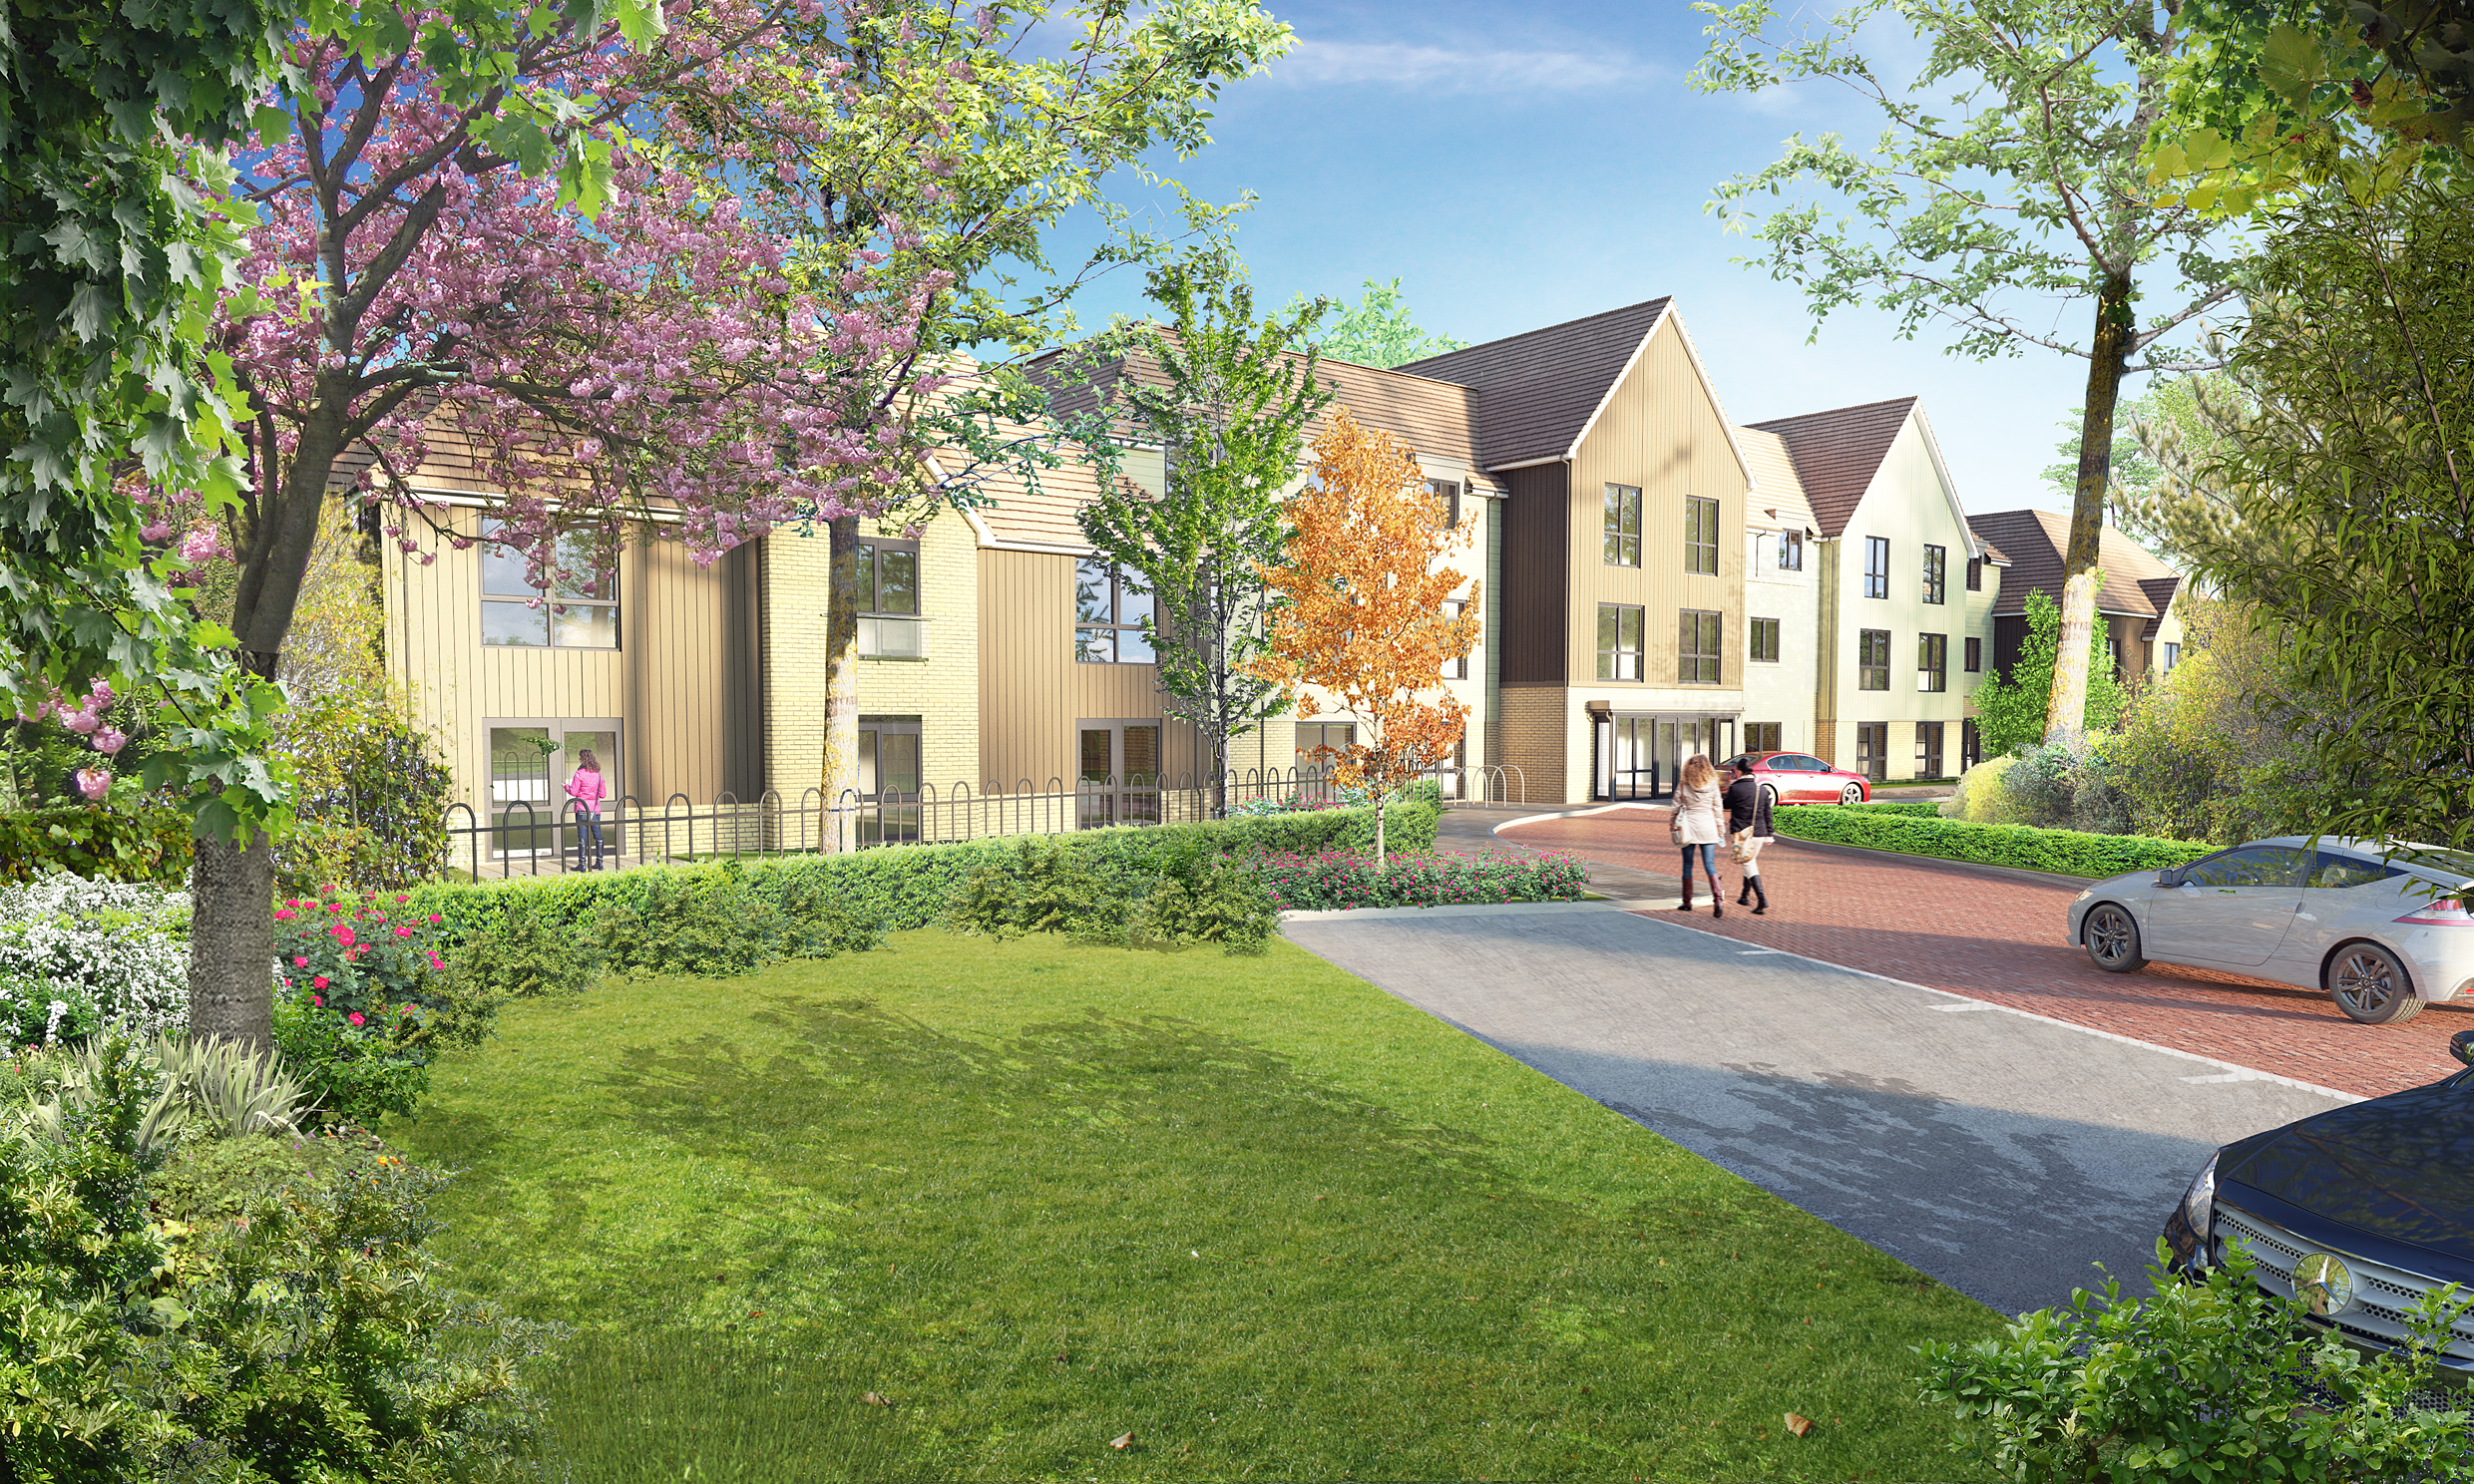 Carterwood complete care home development sale on behalf of Prime plc